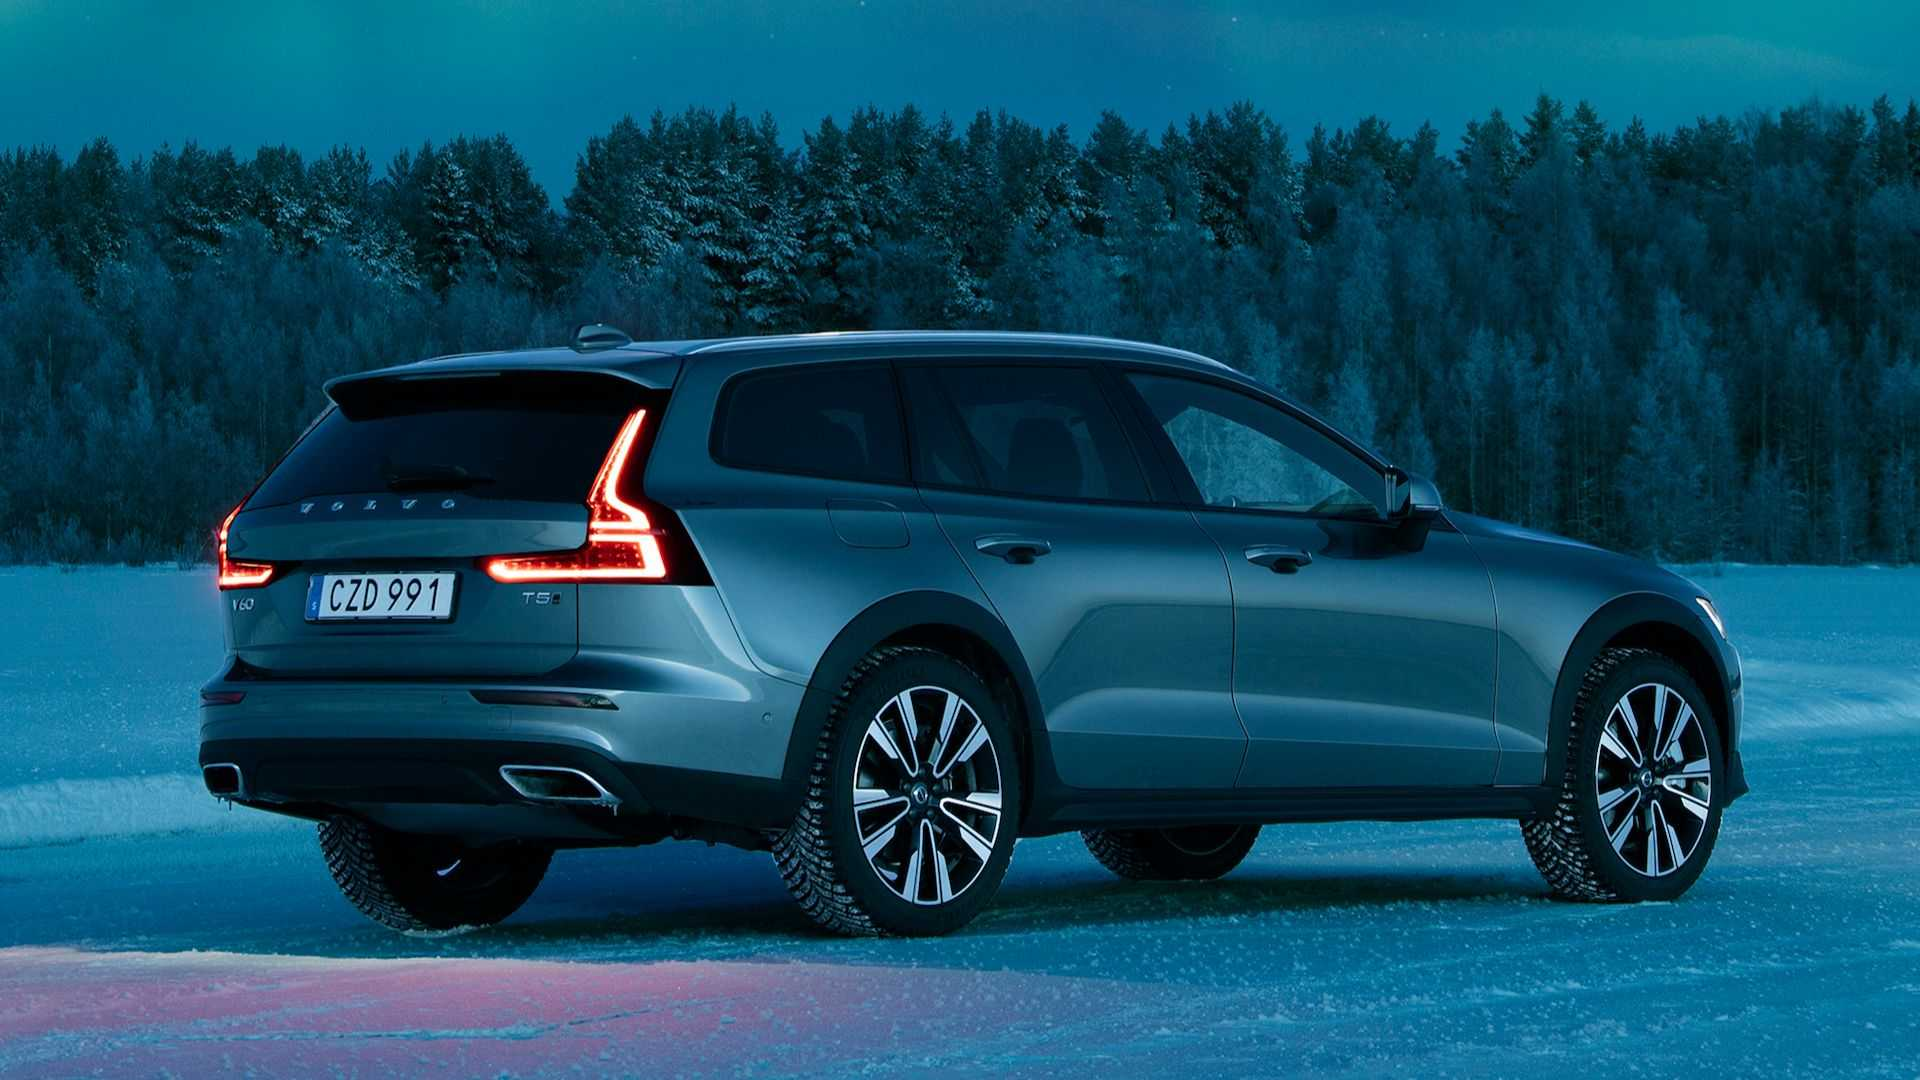 62 New 2020 Volvo V60 Cross Country Price And Release Date